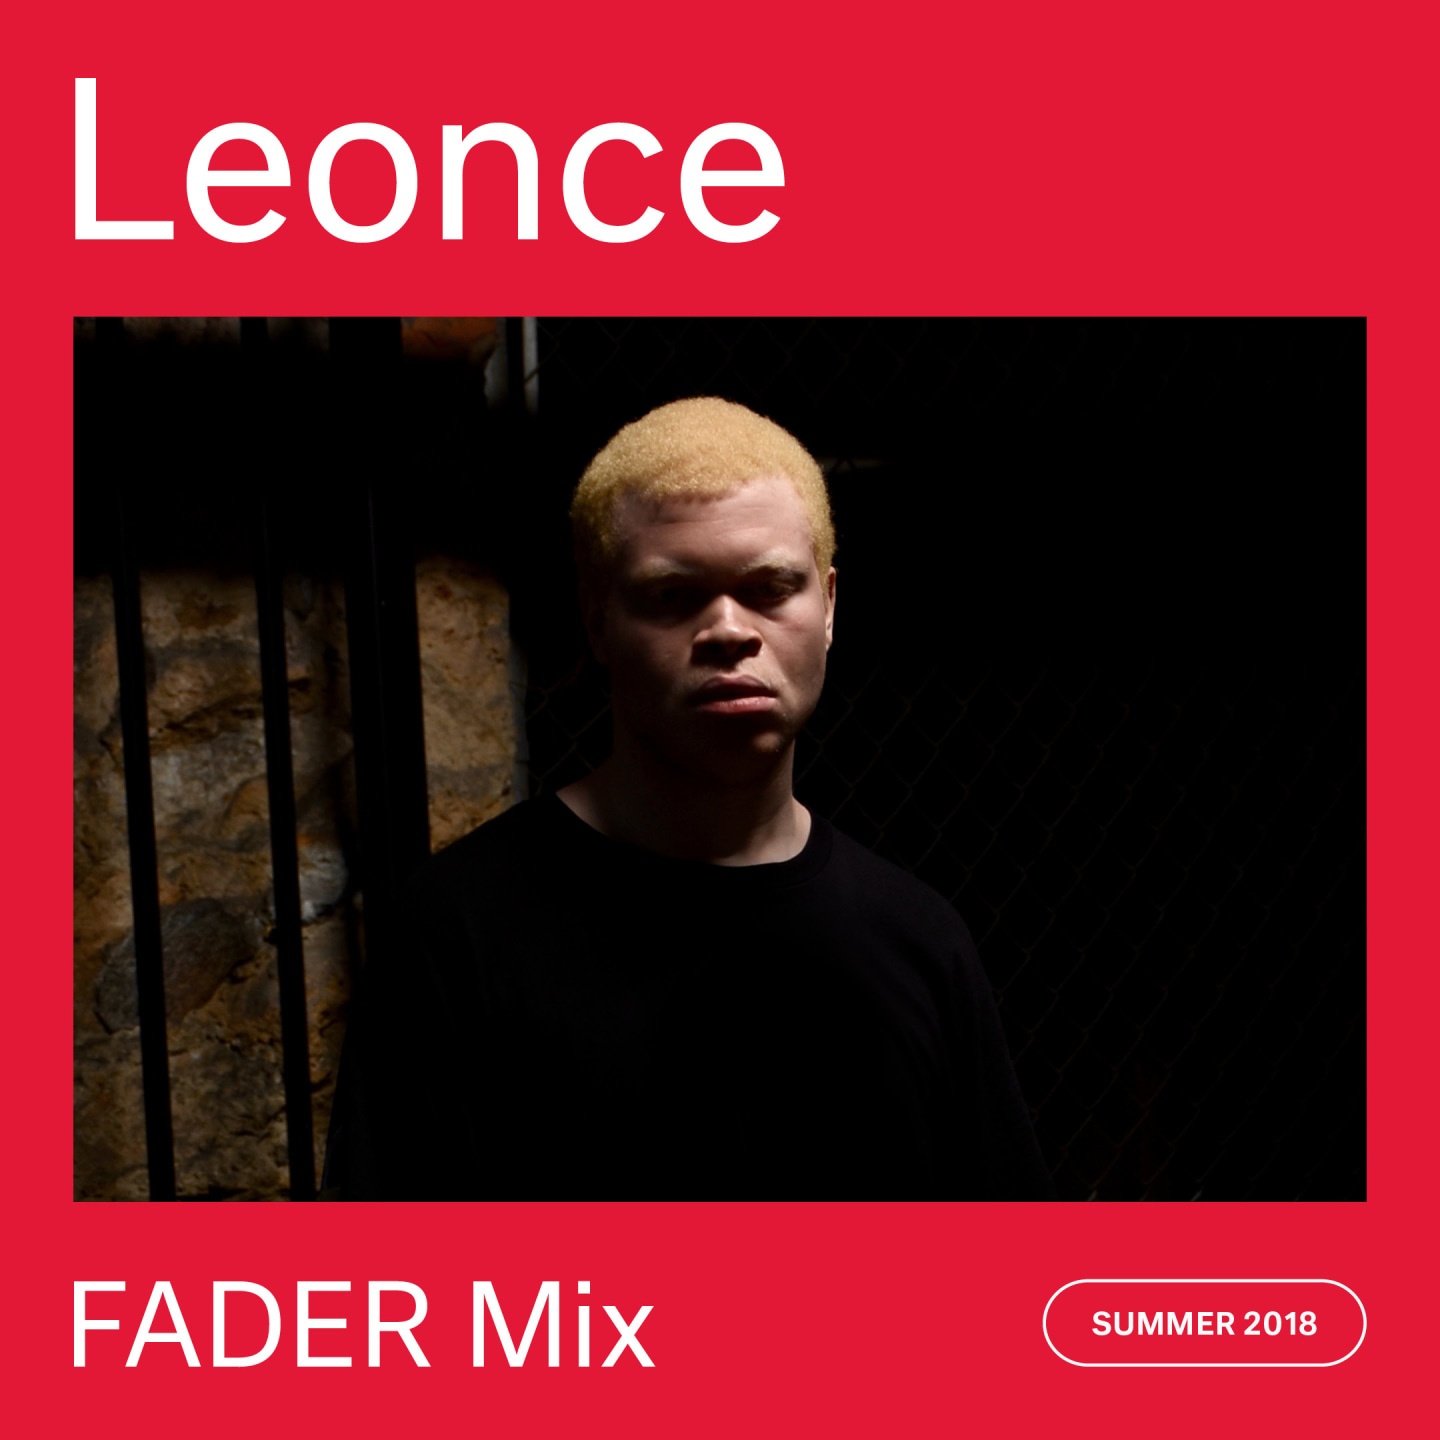 Listen to a new FADER Mix by Leonce